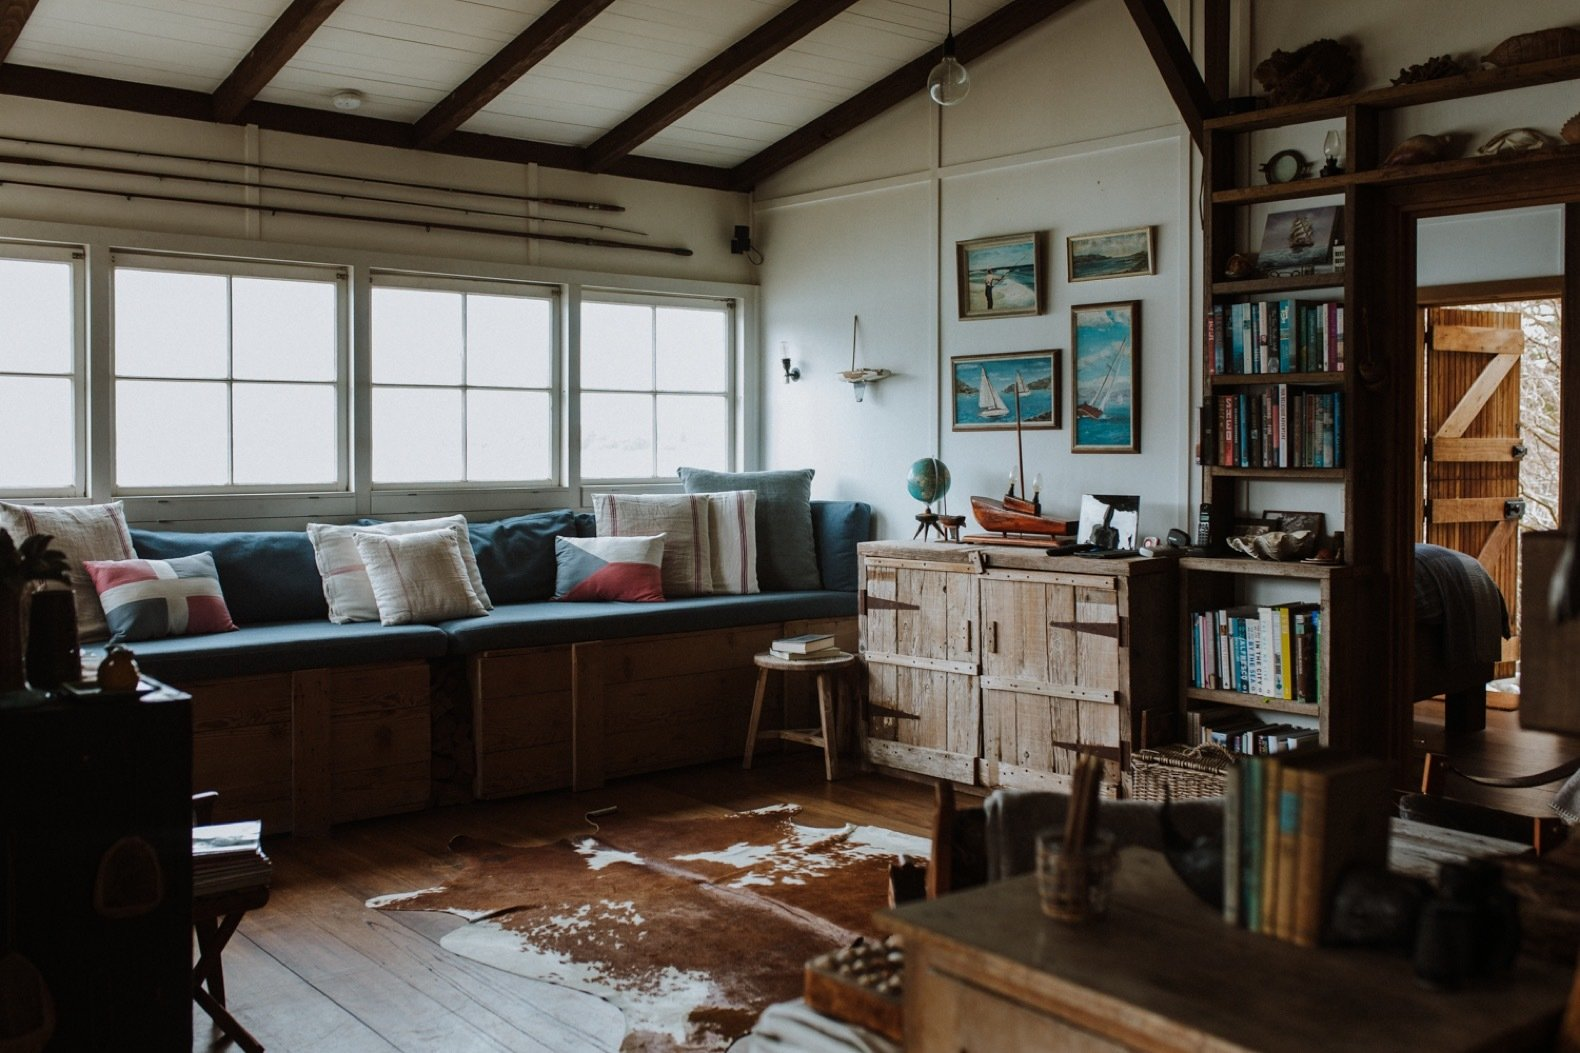 Living Room, Stools, Chair, Bookcase, Pendant Lighting, Medium Hardwood Floor, Shelves, Bench, and Rug Floor The couple built many furnishings, such as the storage chests, out of old leftover timber.  Photo 6 of 11 in A 1920s Fisherman's Shack in Australia Breathes New Life as a Cozy, Unique Rental